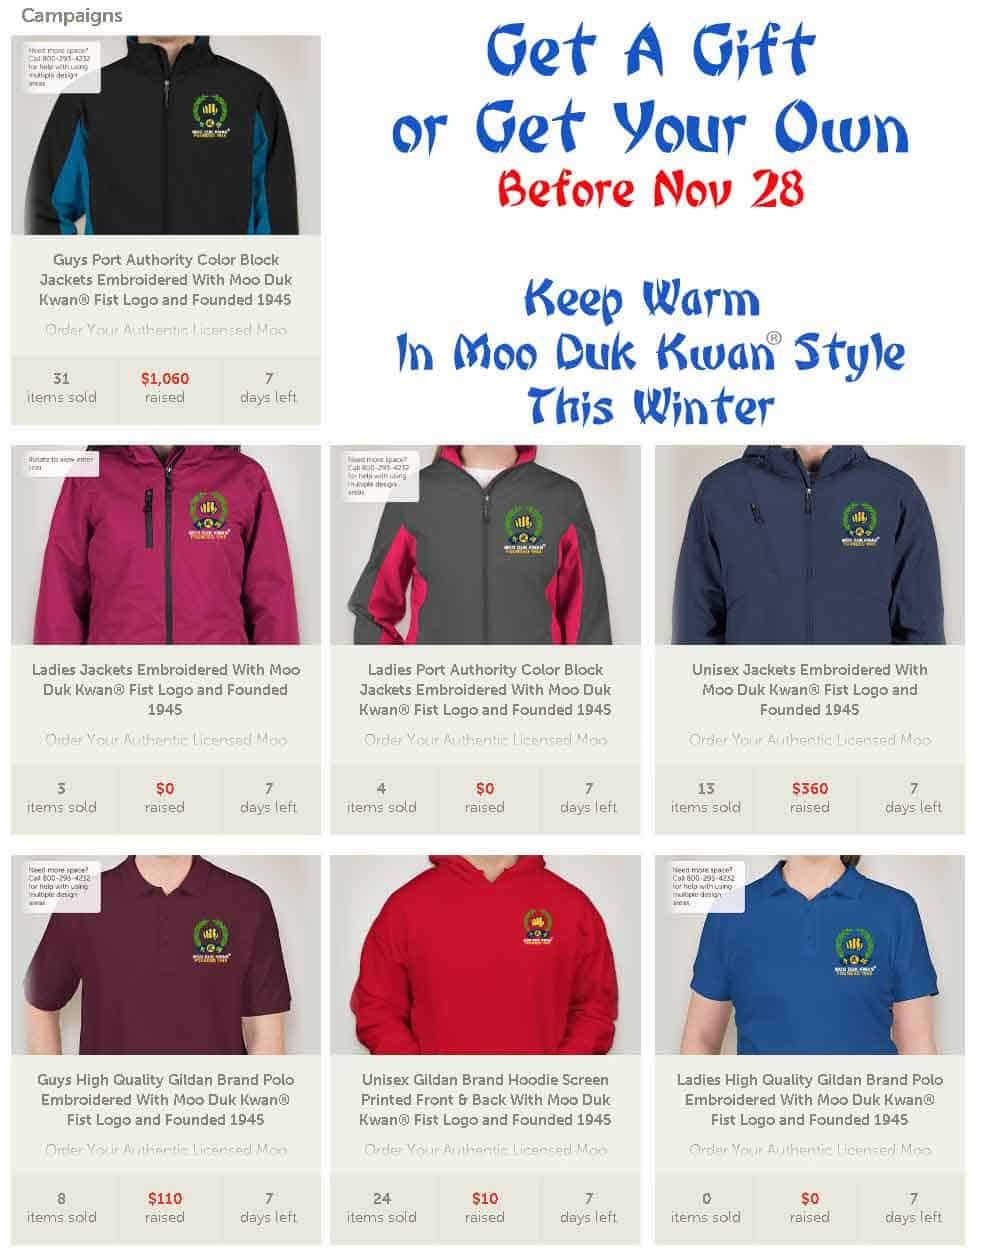 Order online before November 28